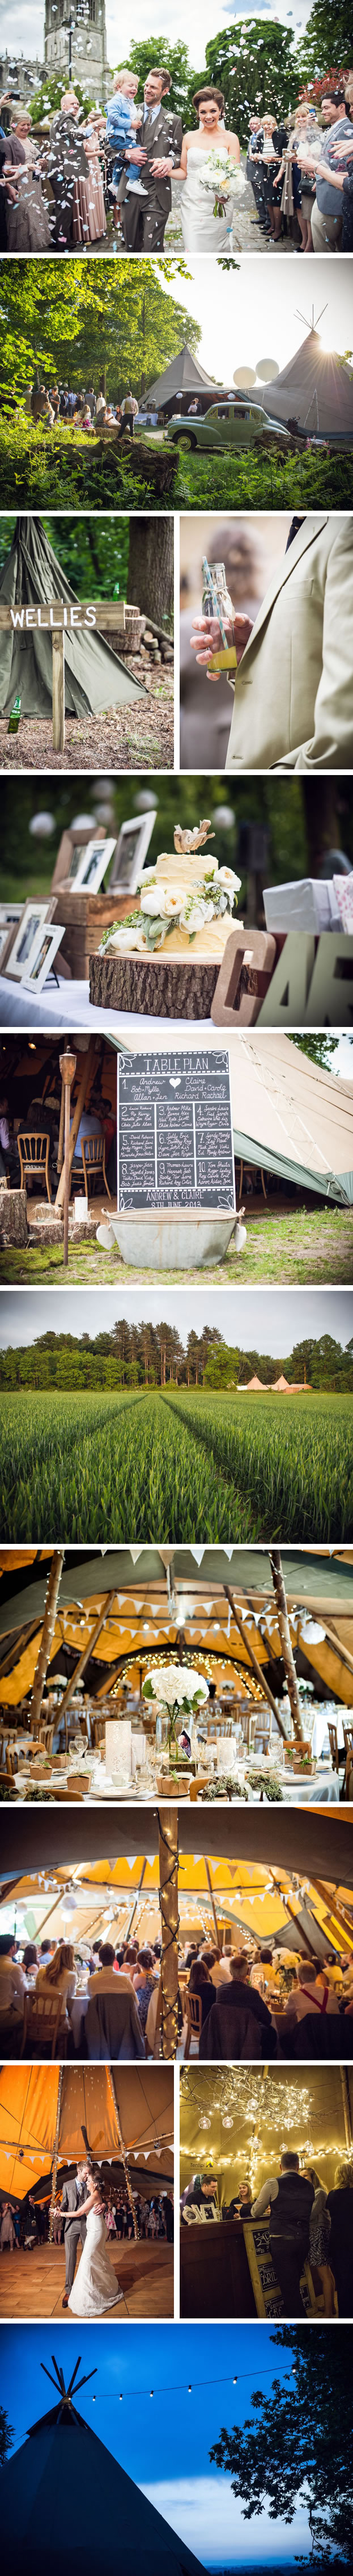 Hereu0027s a wedding reception held in what i consider to be the ultimate festival tent & Hereu0027s a wedding reception held in what i consider to be the ...